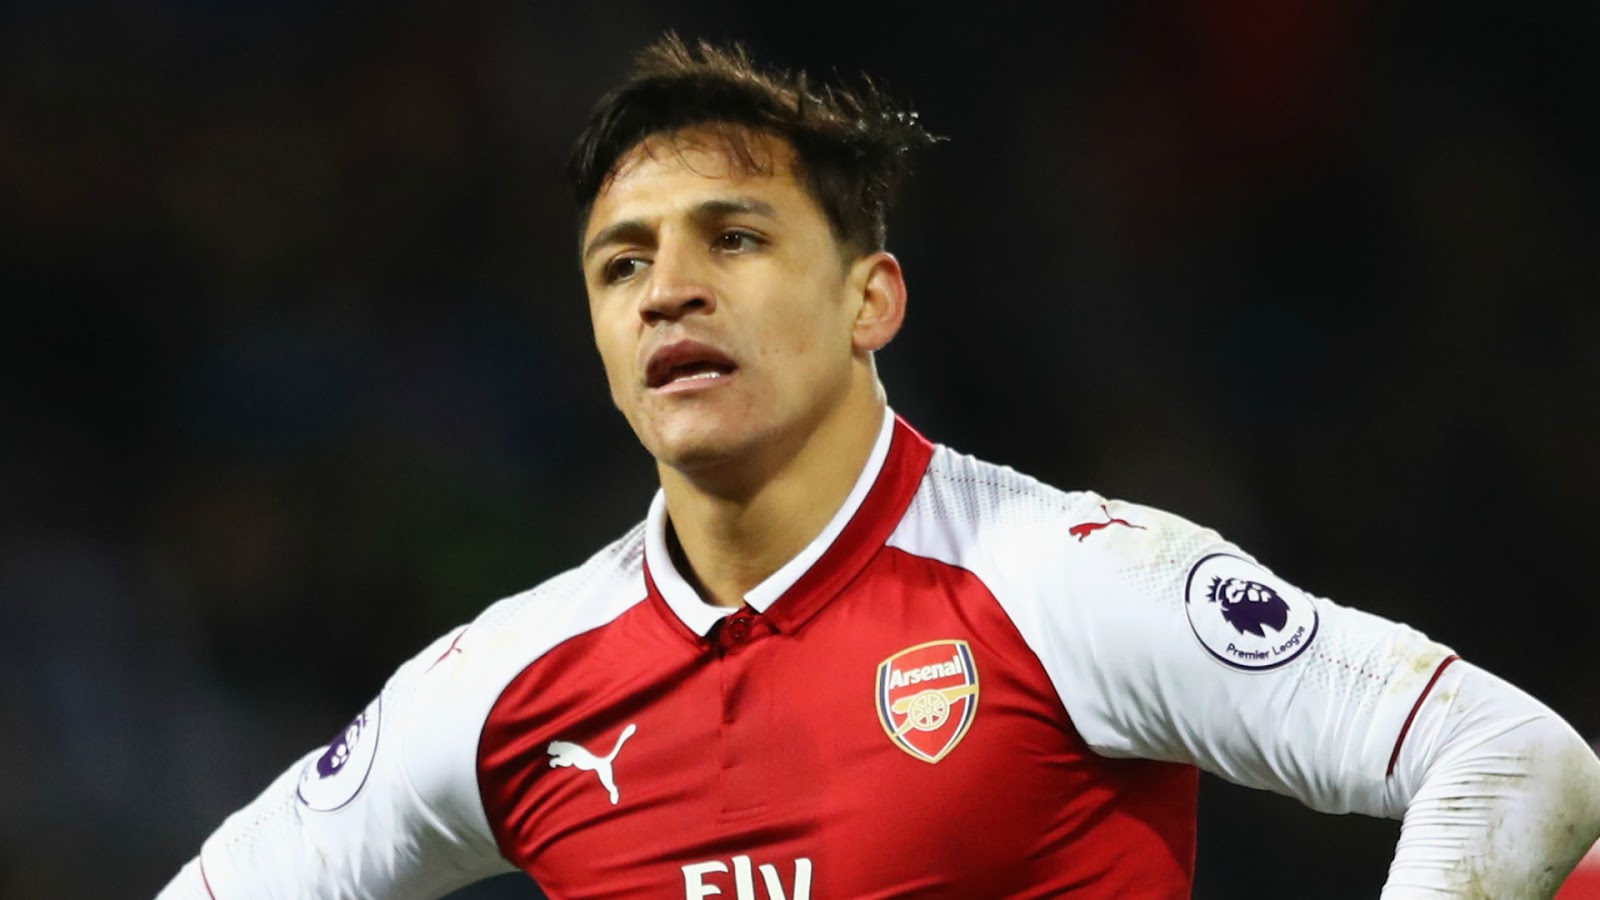 sports news: all transfer updates wow! MAN CITY TO SIGN ALEXIS THIS WEEK